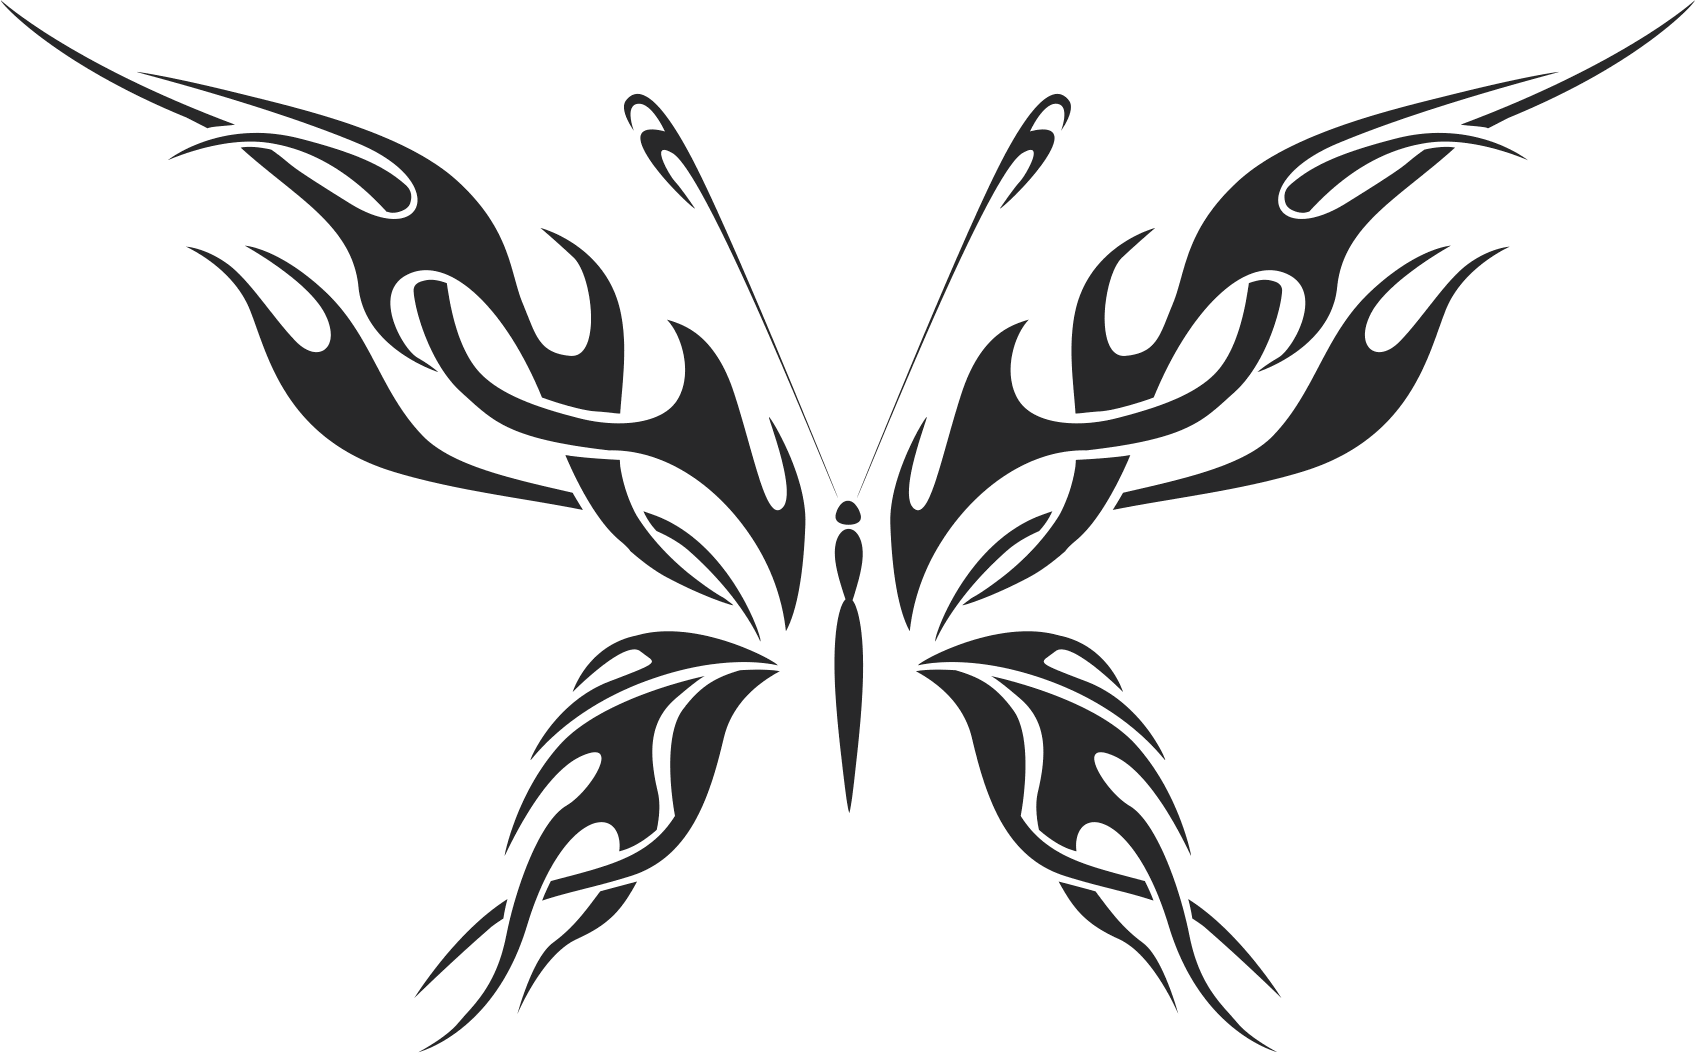 Butterfly Silhouette 010 Free CDR Vectors Art